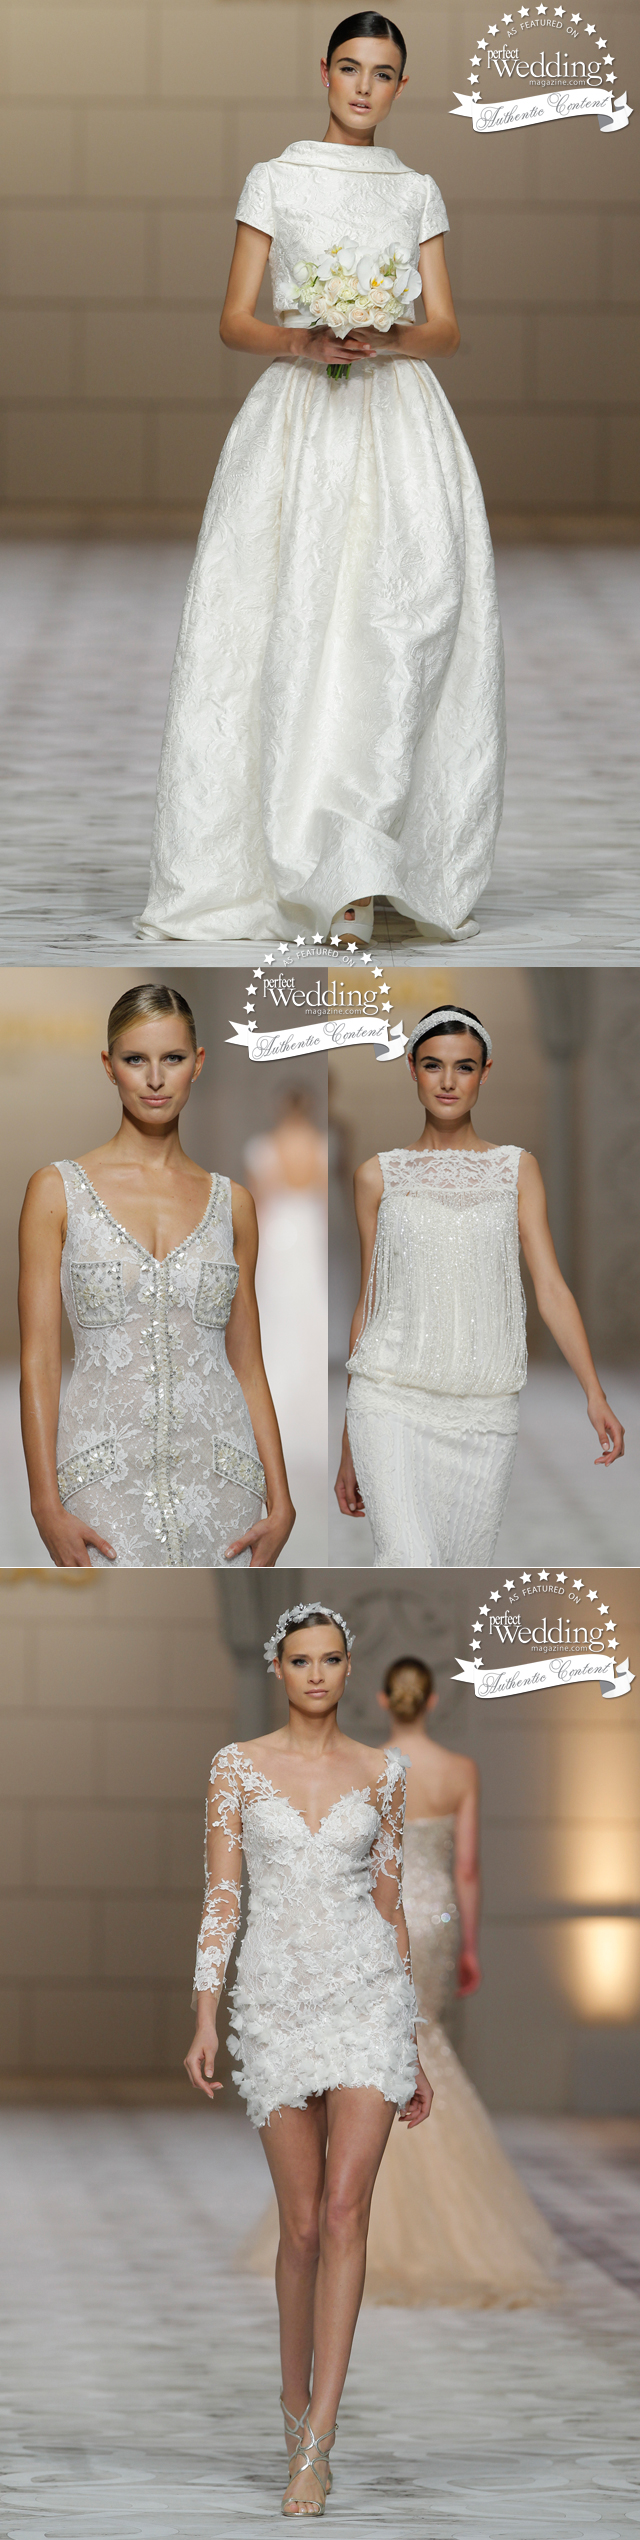 Pronovias, Pronovias 2015 collection, Atelier Pronovias 2015 collection, Perfect Wedding Magazine